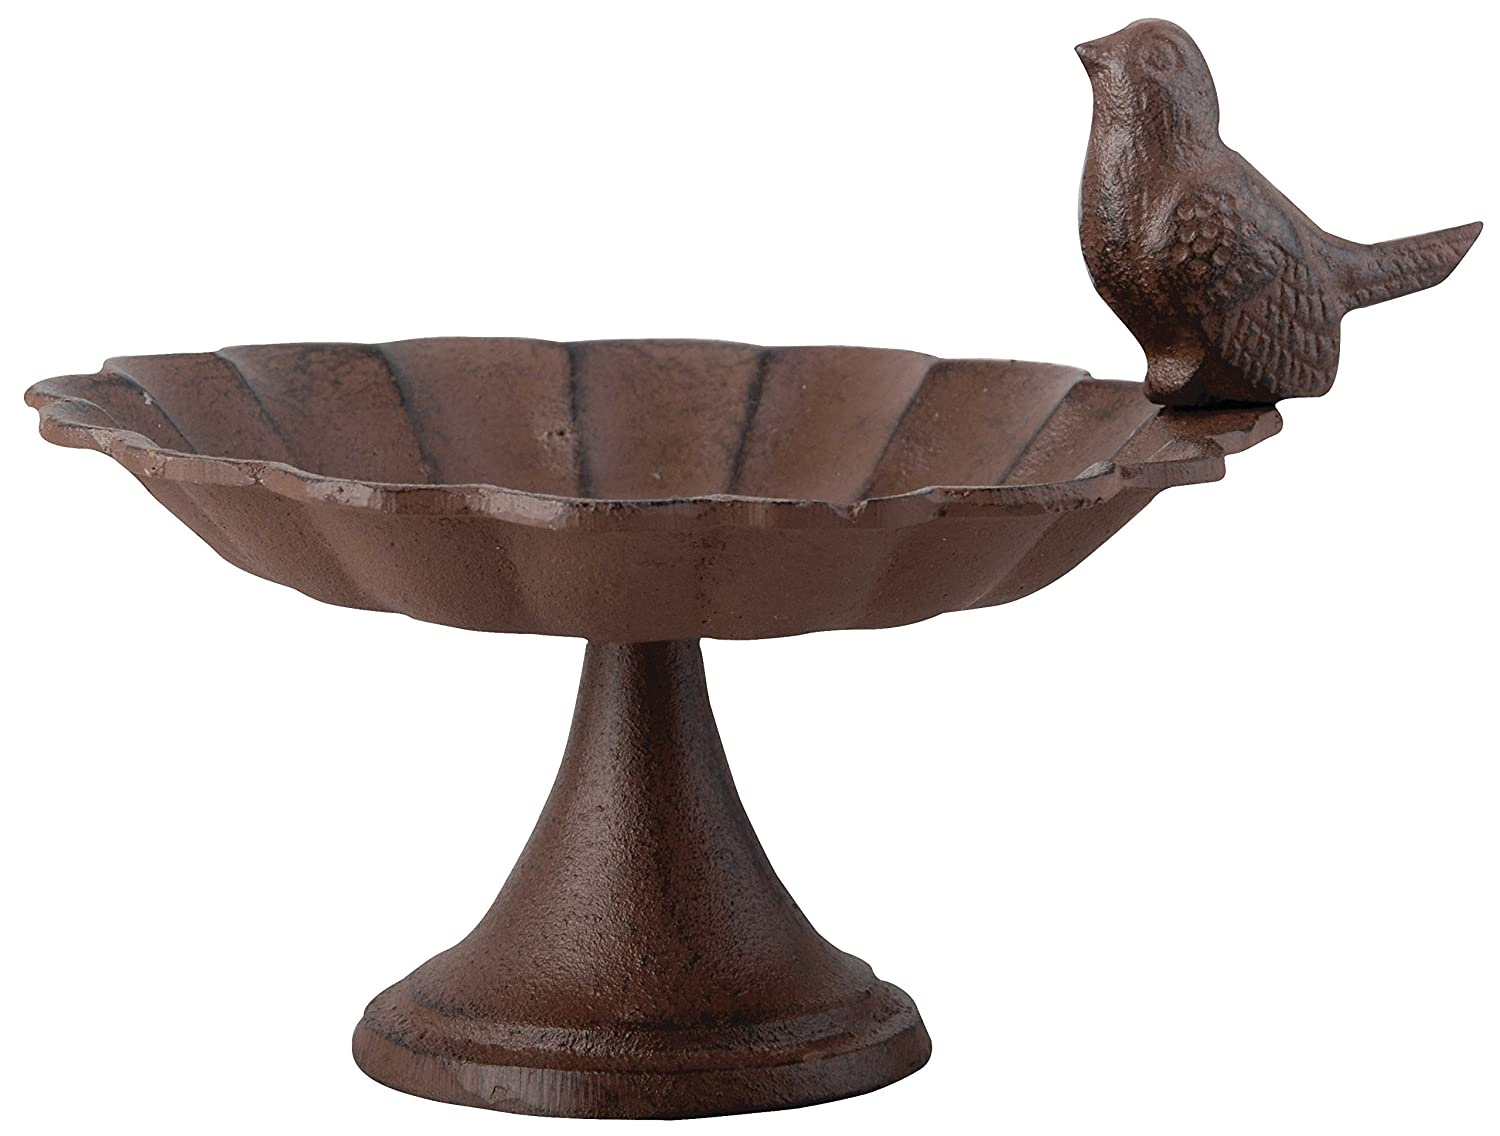 Esschert Design FB164 Cast Iron Pedestal Birdbath, Small